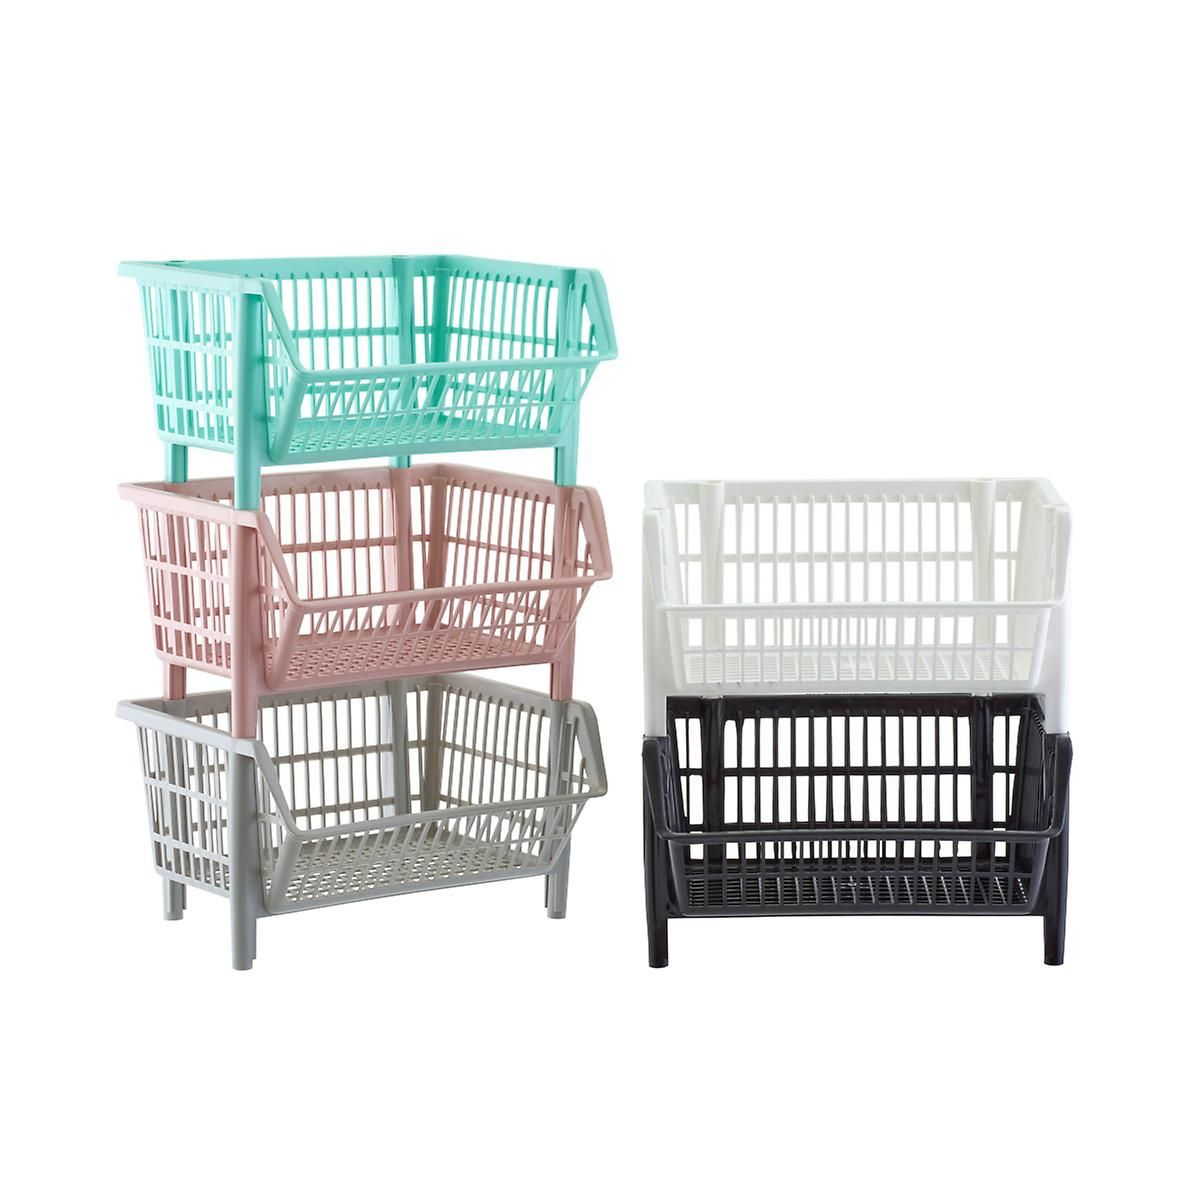 Our Basic Black Stackable Baskets Stackable Baskets Laundry Room Storage Shelves Small Laundry Room Organization